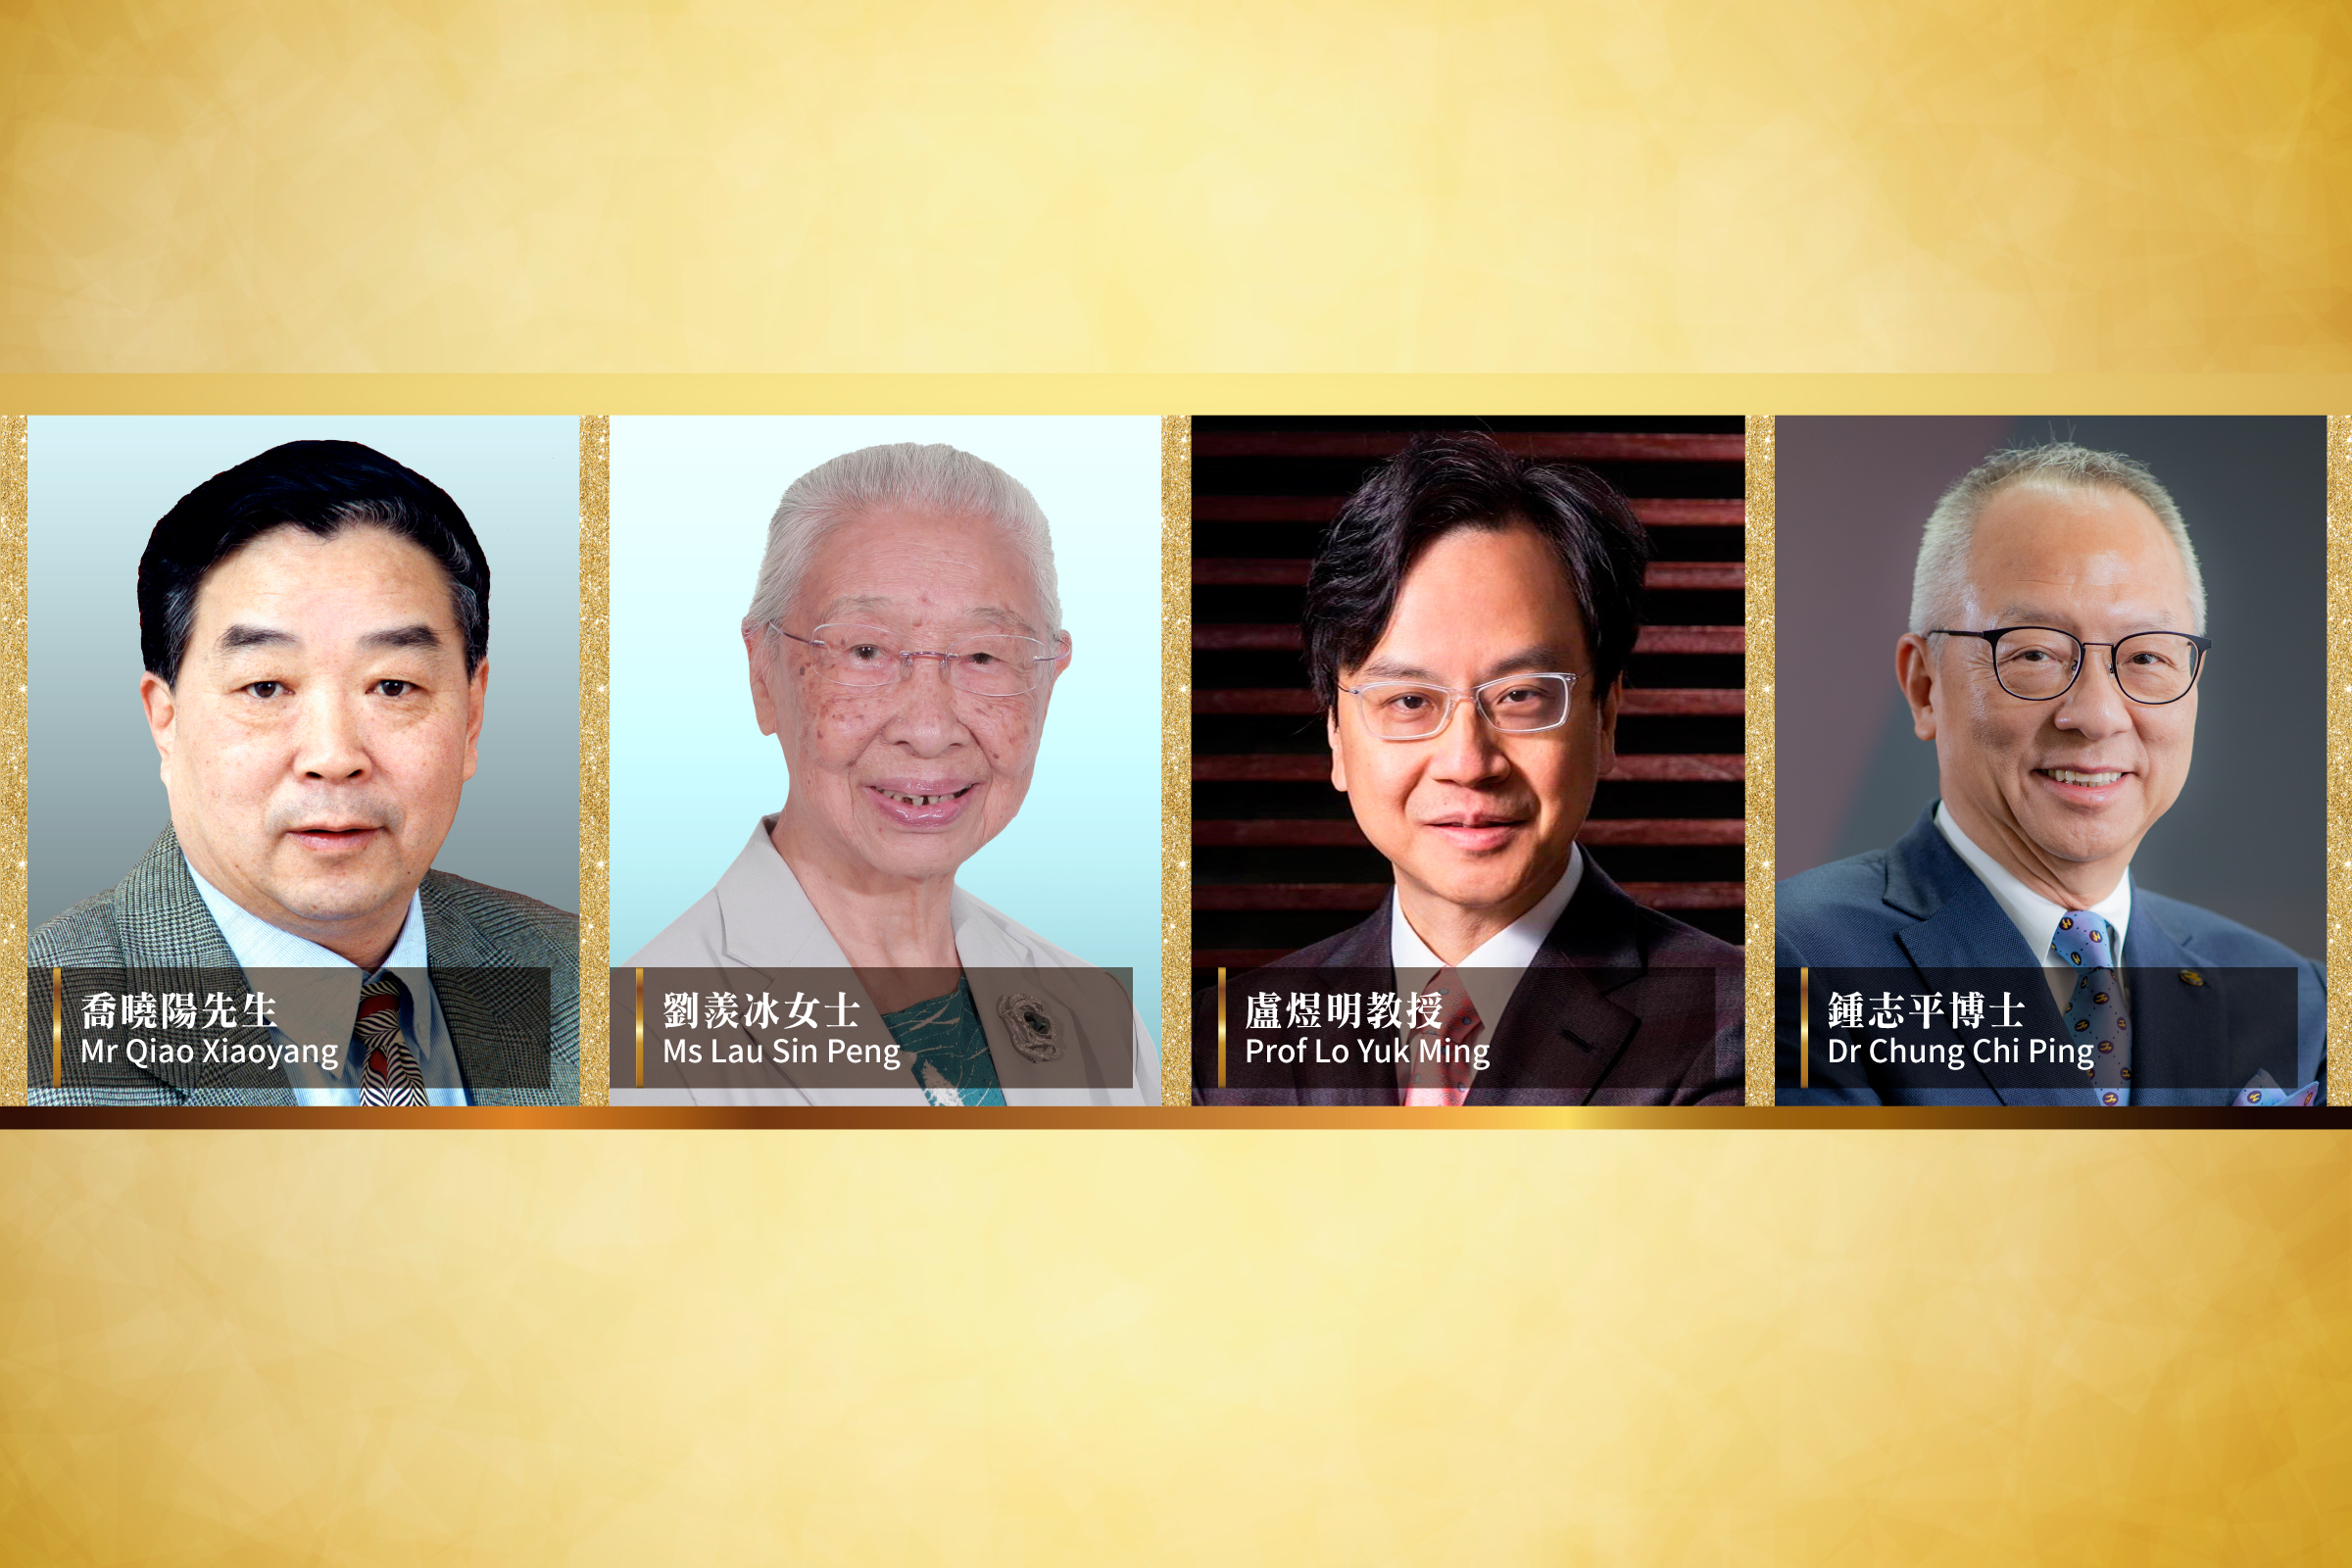 UM will confer honorary doctorates on four distinguished individuals